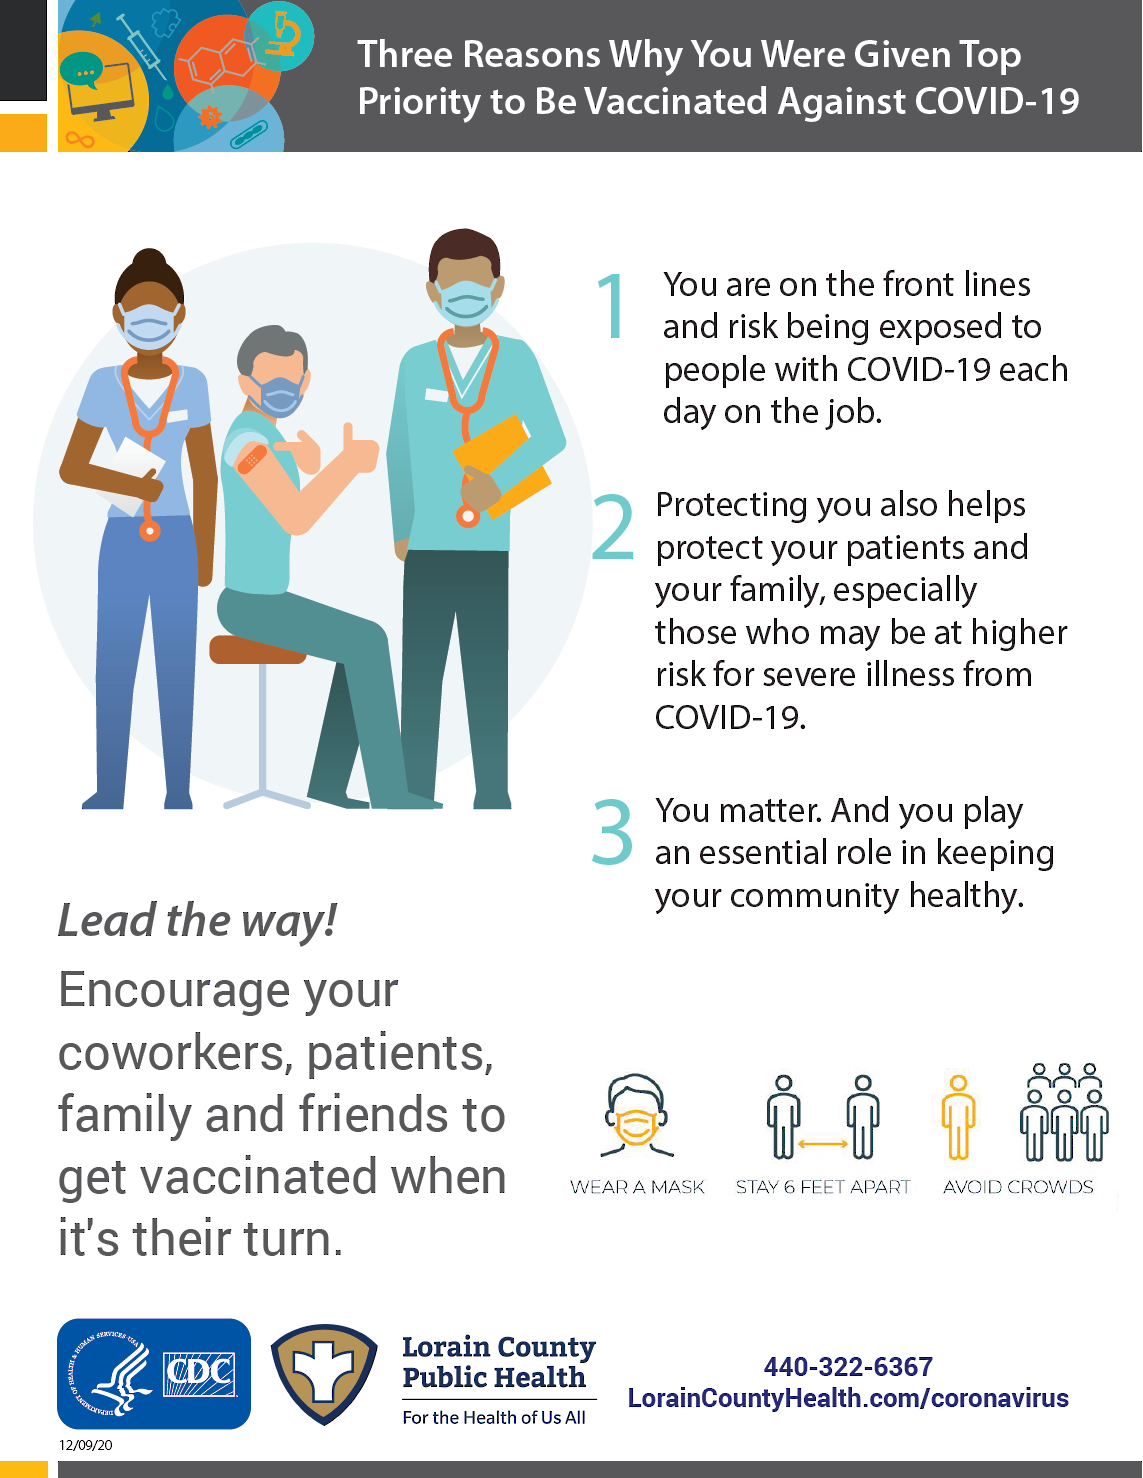 three reasons why you were given top priority to be vaccinated against COVID-19